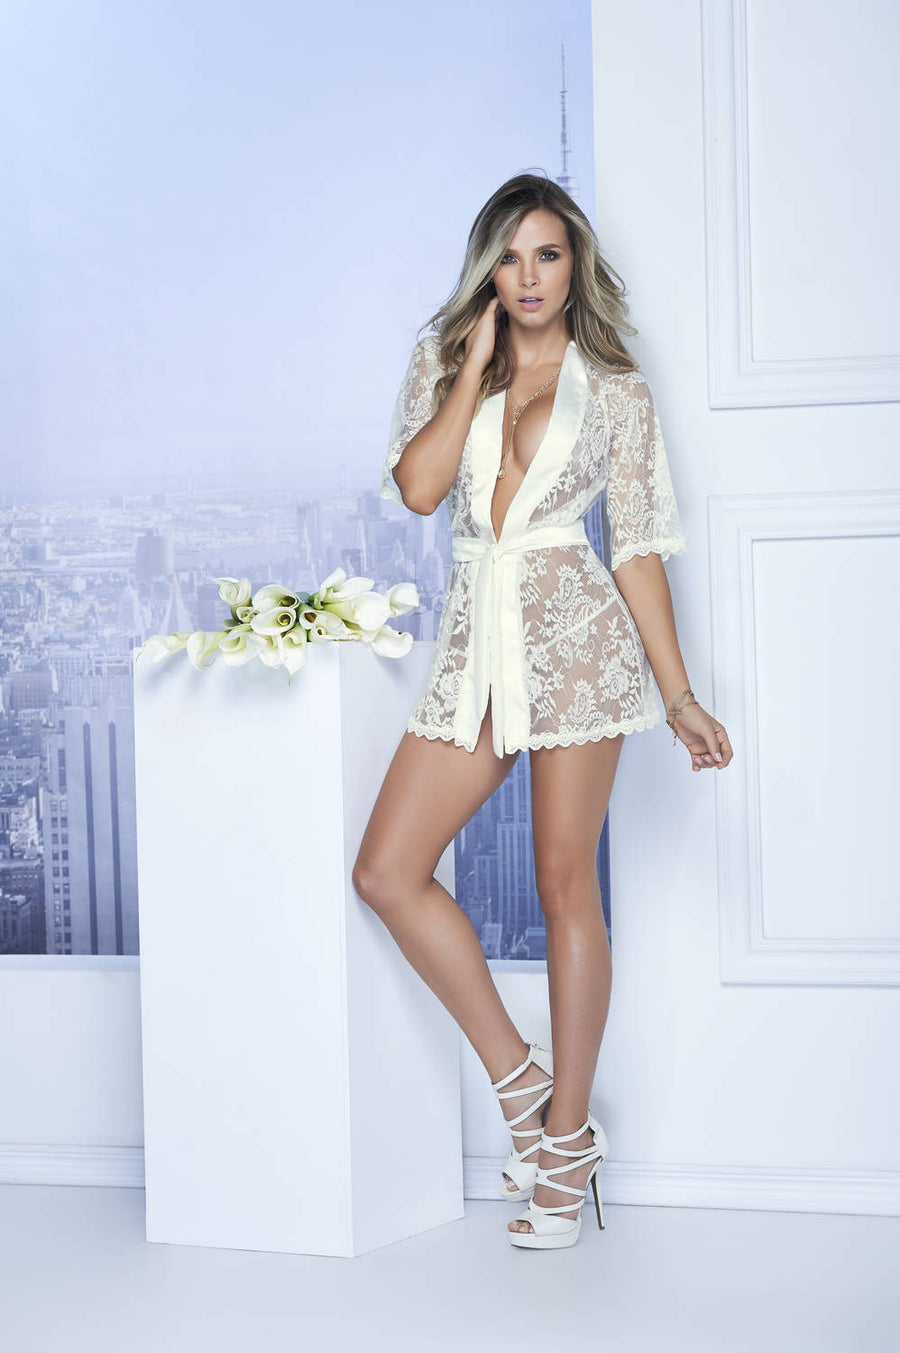 b5758baf06 Mapale Women Short Lace Robe With Satin Collar And Belt 7115 ...